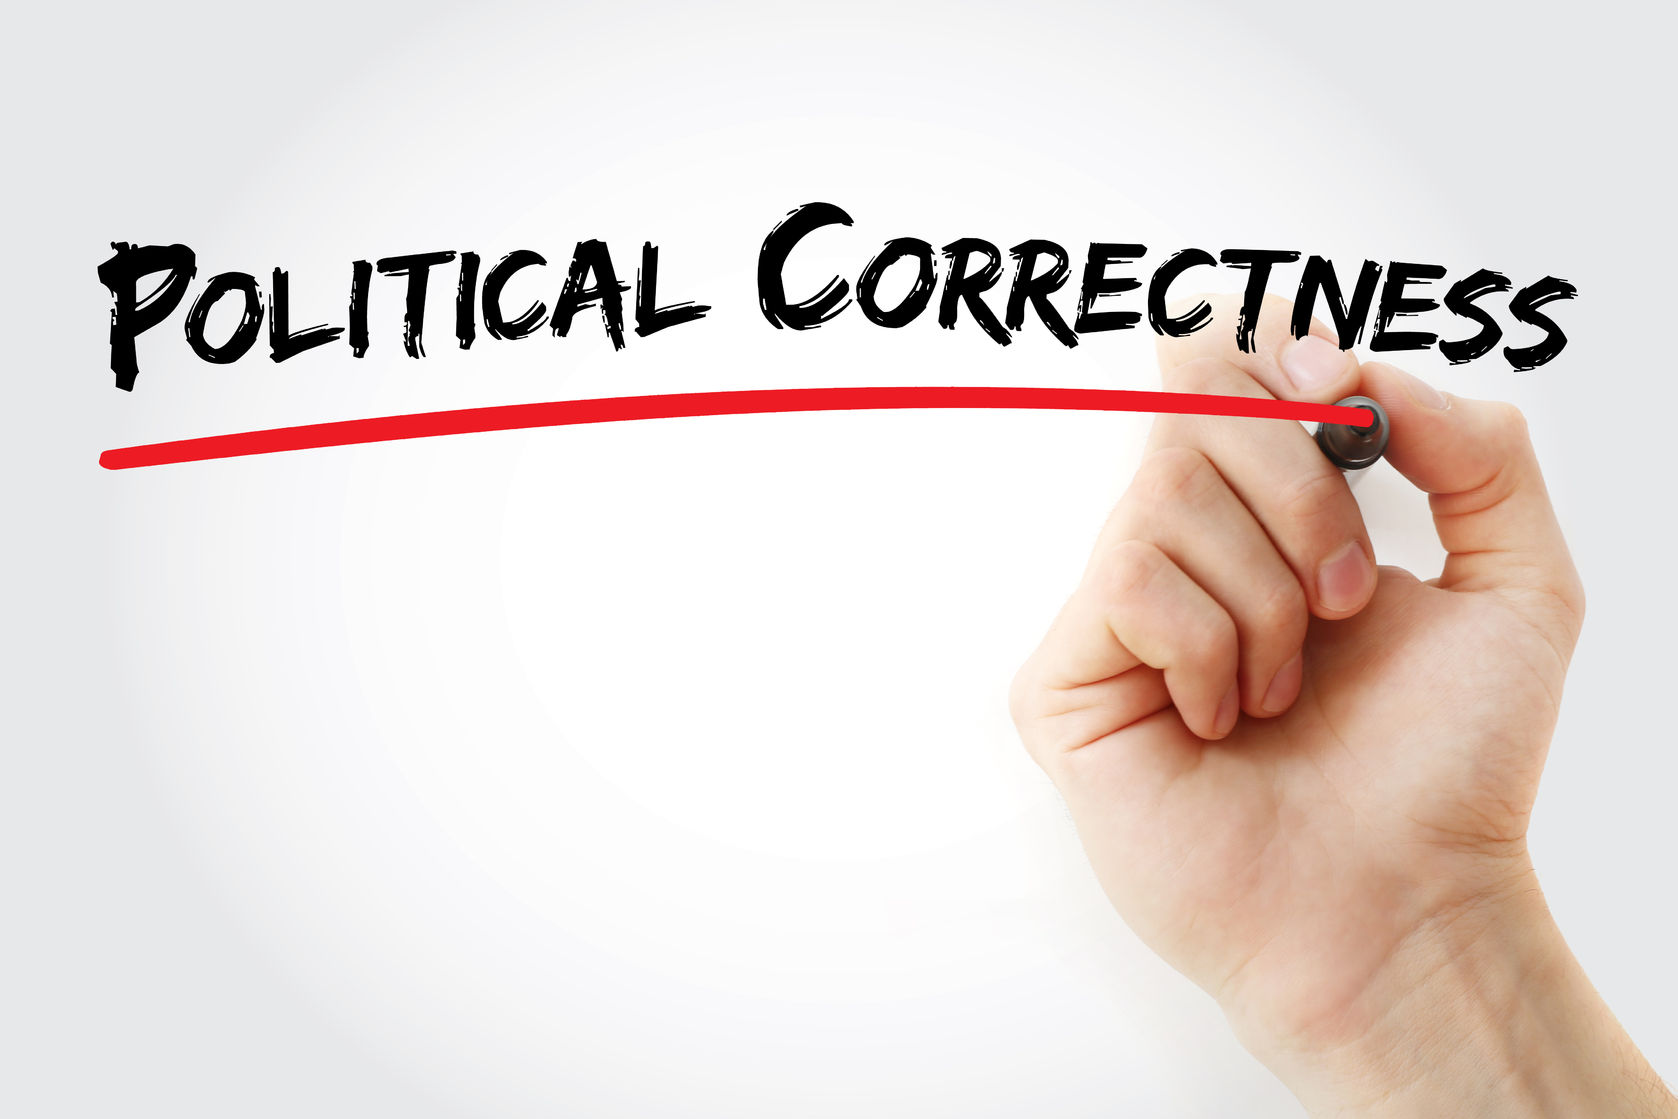 Michael Brown on Is the Politically Correct Culture Dictated by White Elites?